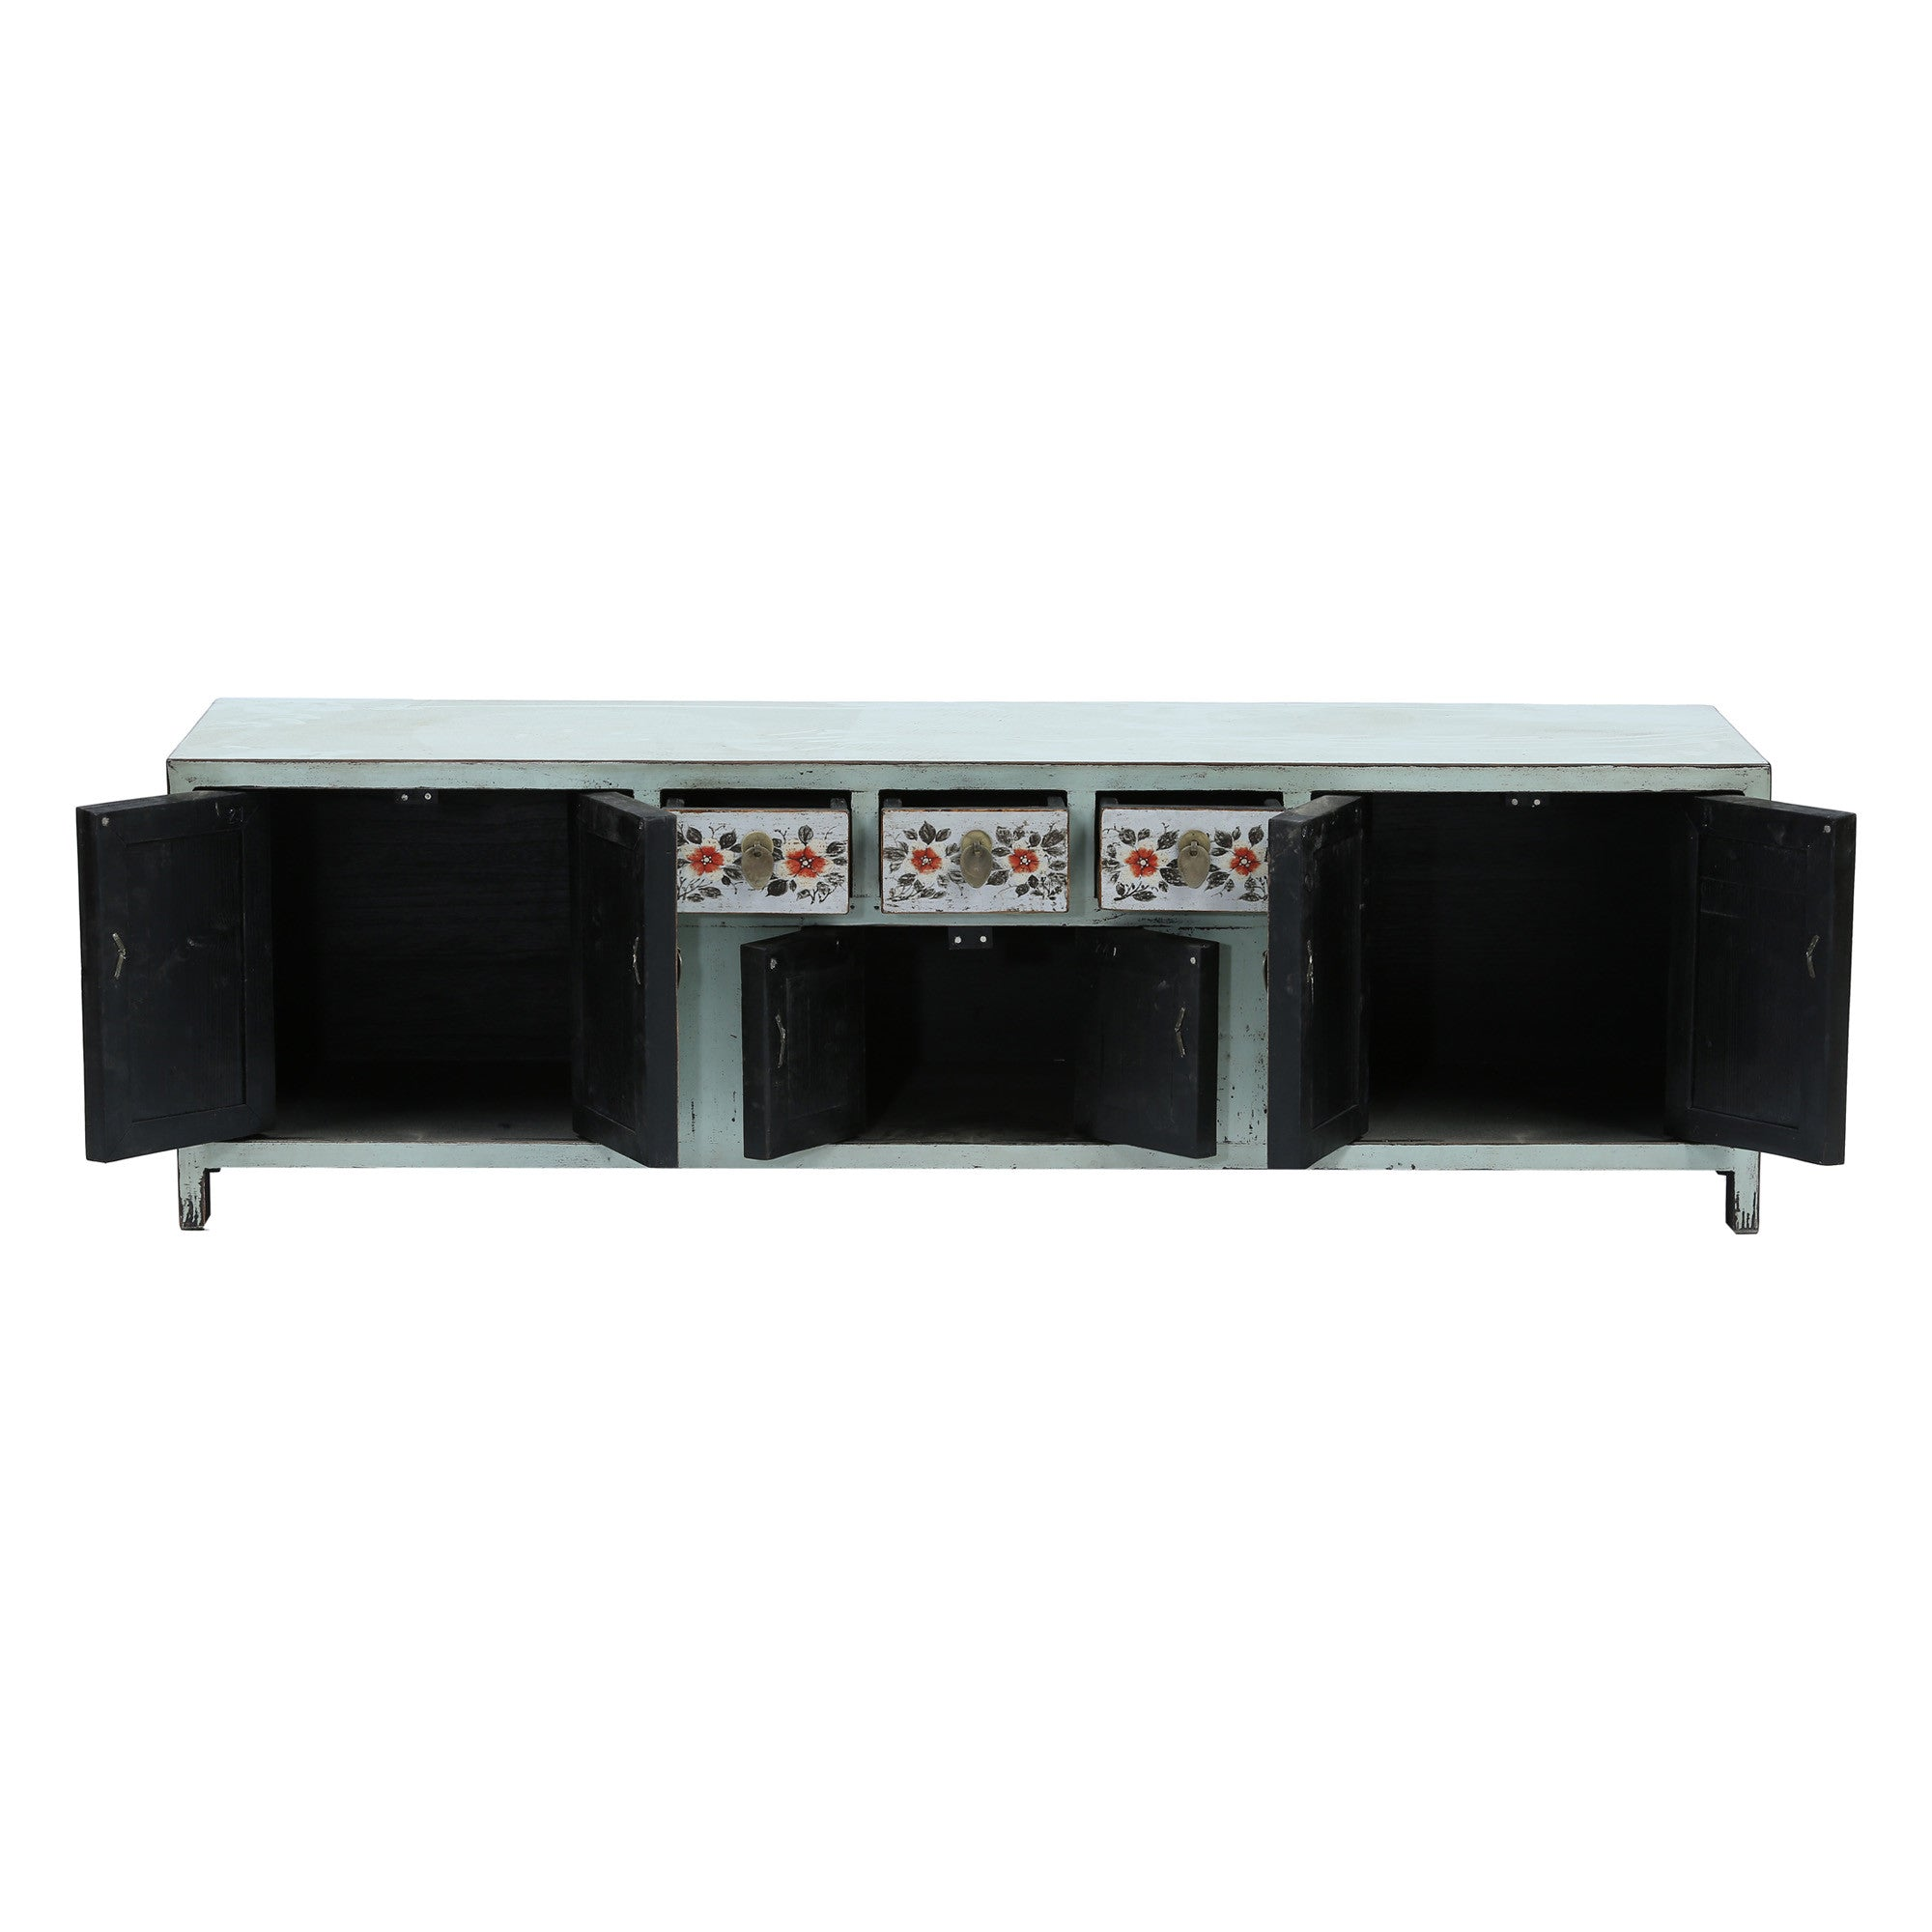 Light Blue Low Sideboard with Red Flowers with doors and drawers open